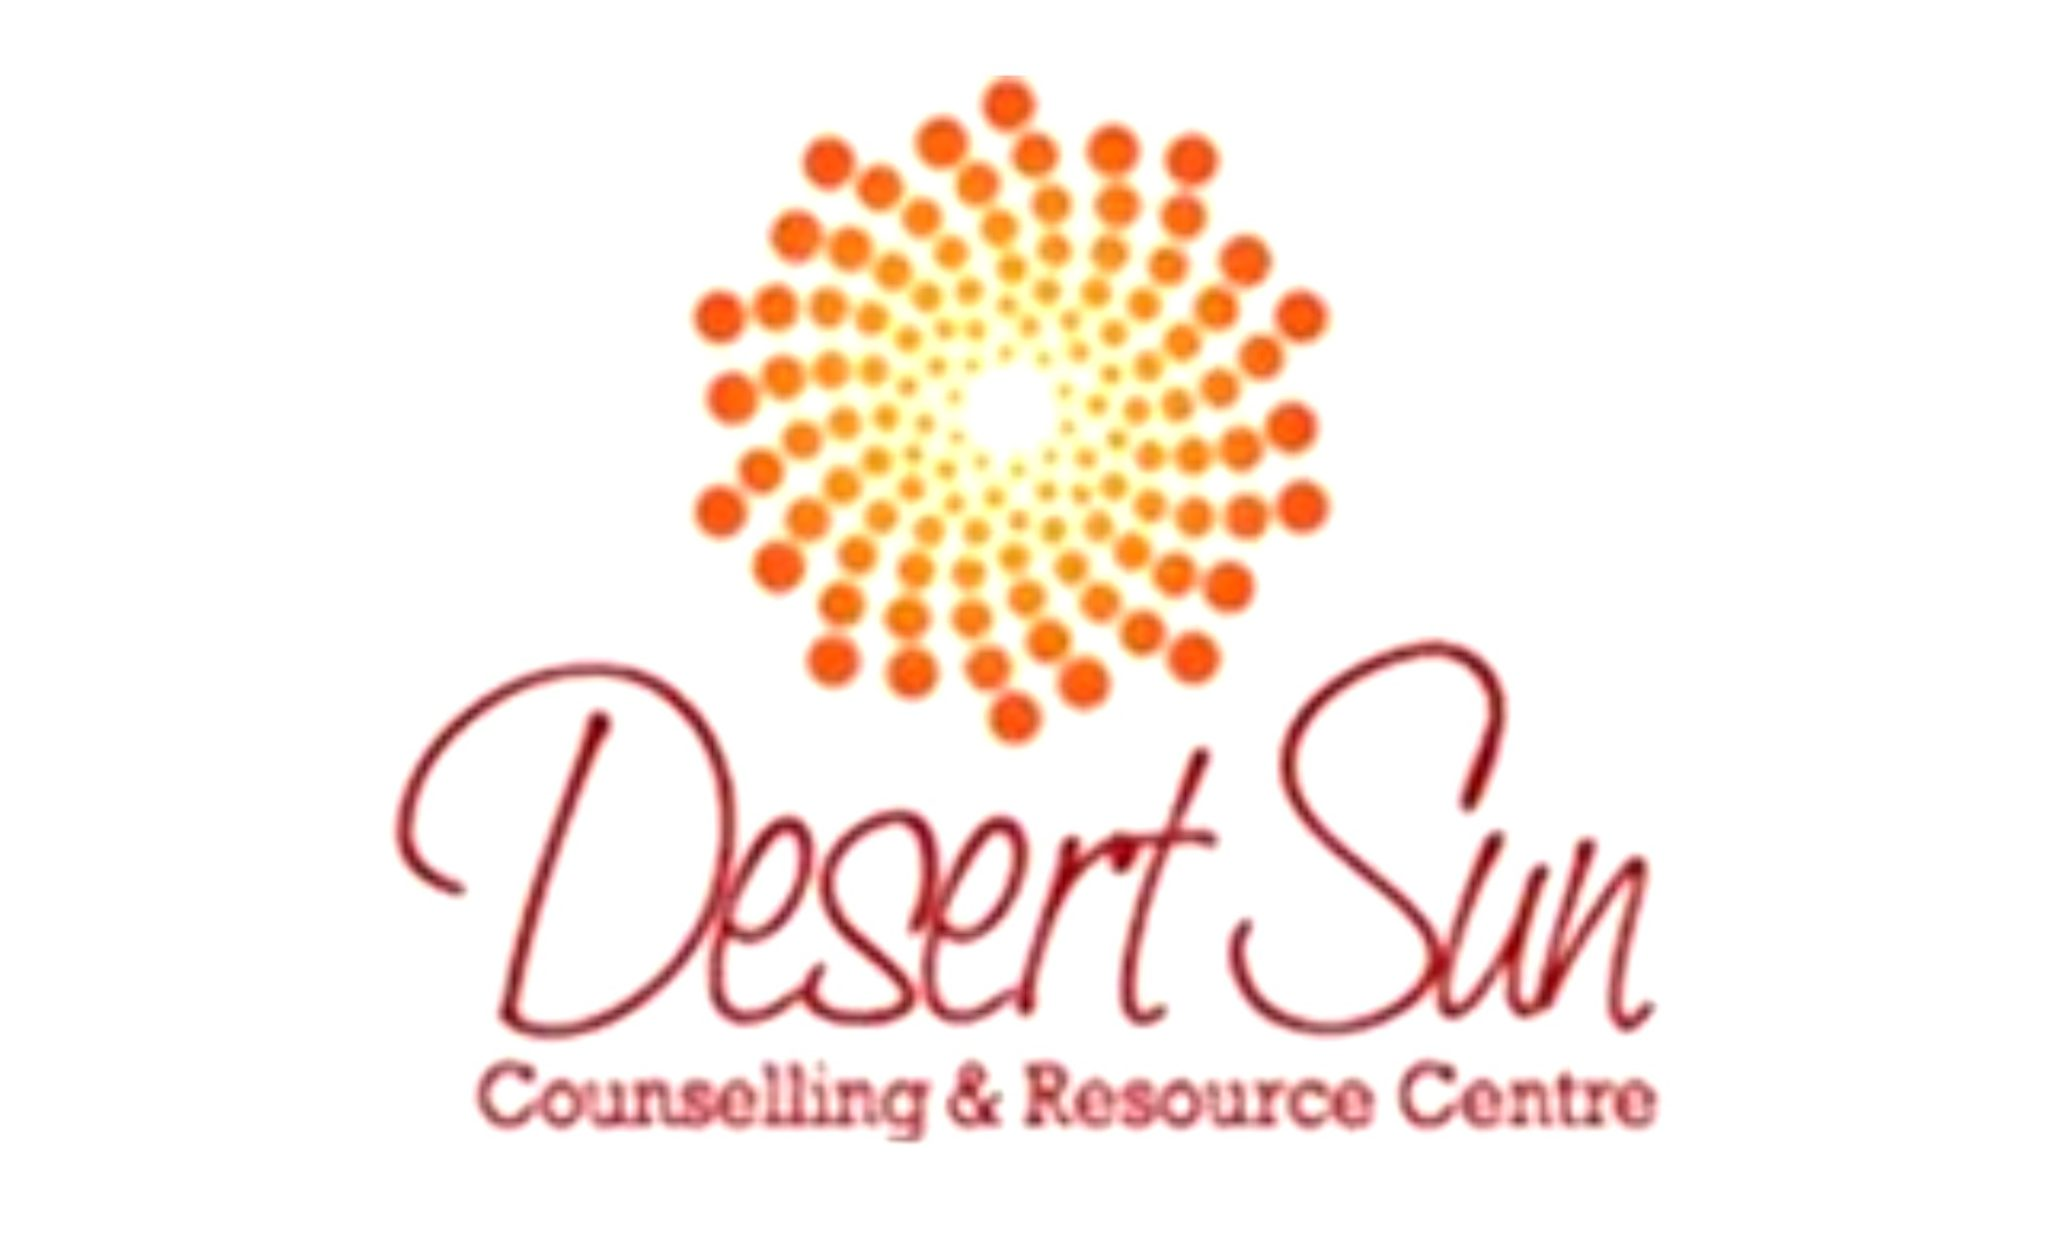 Desert Sun Counselling and Resource Centre logo